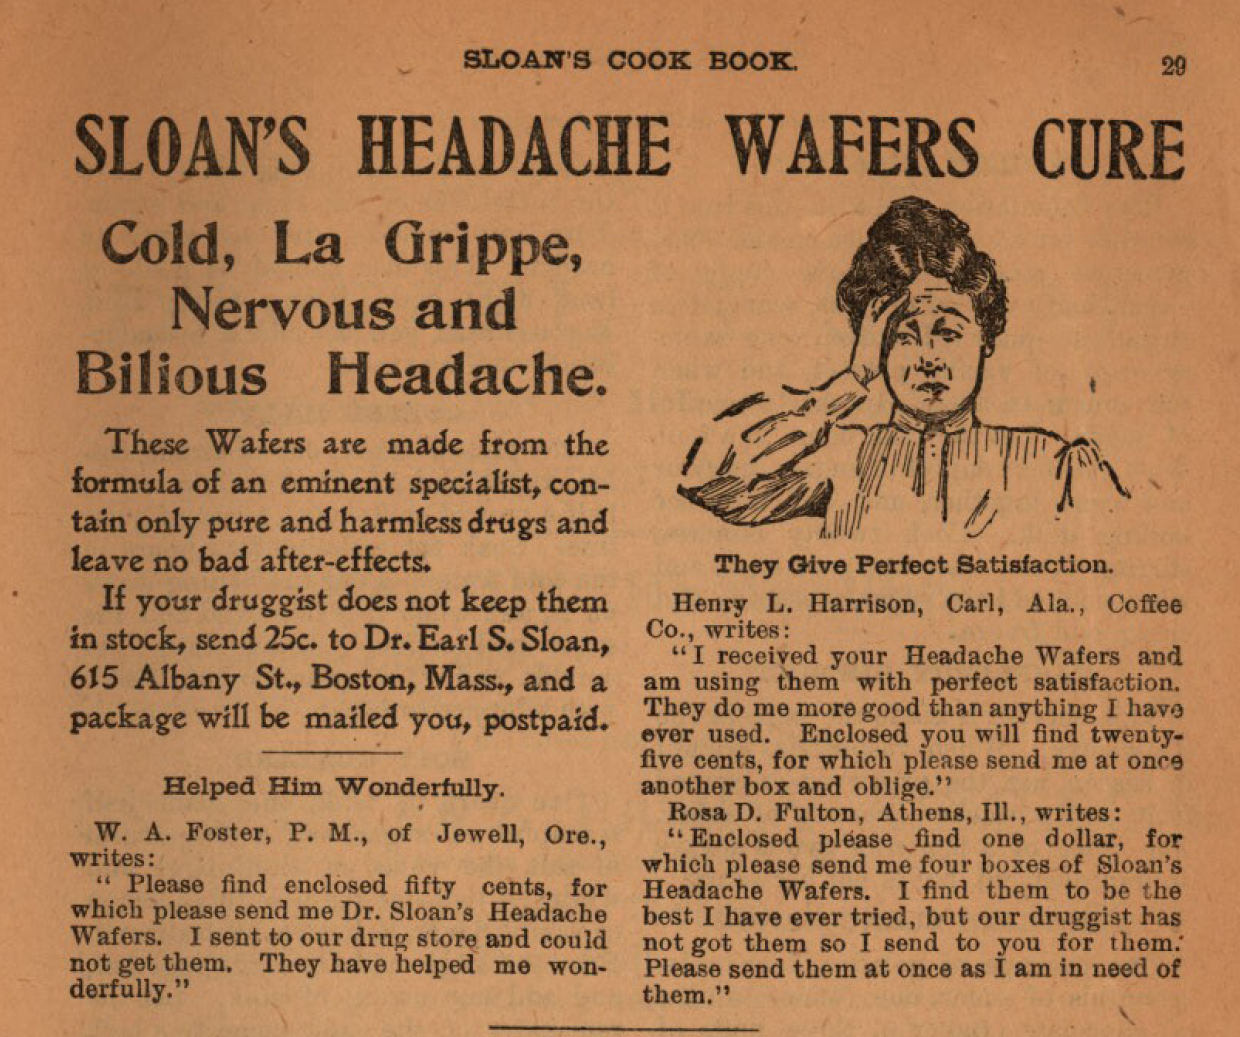 "Kristin Holt | Victorian-American Headaches, Part 4. Advertisement for SLOAN'S HEADACHE WAFERS CURE, ad within Sloan's Cook Book and Advice to Housekeepers, published 1905. Image Text reads: ""SLOAN'S HEADACHE WAFERS CURE. Cold, La Grippe, Nervous and Bilious Headache. These Wafers are made from the formula of an eminent specialist, contain only pure and harmless drugs and leave no bad after-effects. If your druggist does not keep themn in stock, send 25c. to Dr. Earl S. Sloan, 615 Albany St., Boston, Mass., and a package will be mailed to you, postpaid."" Text continues with three quotations from letters, containing testimonials. An illustration shows a middle-aged woman, hand to head, in evident pain."